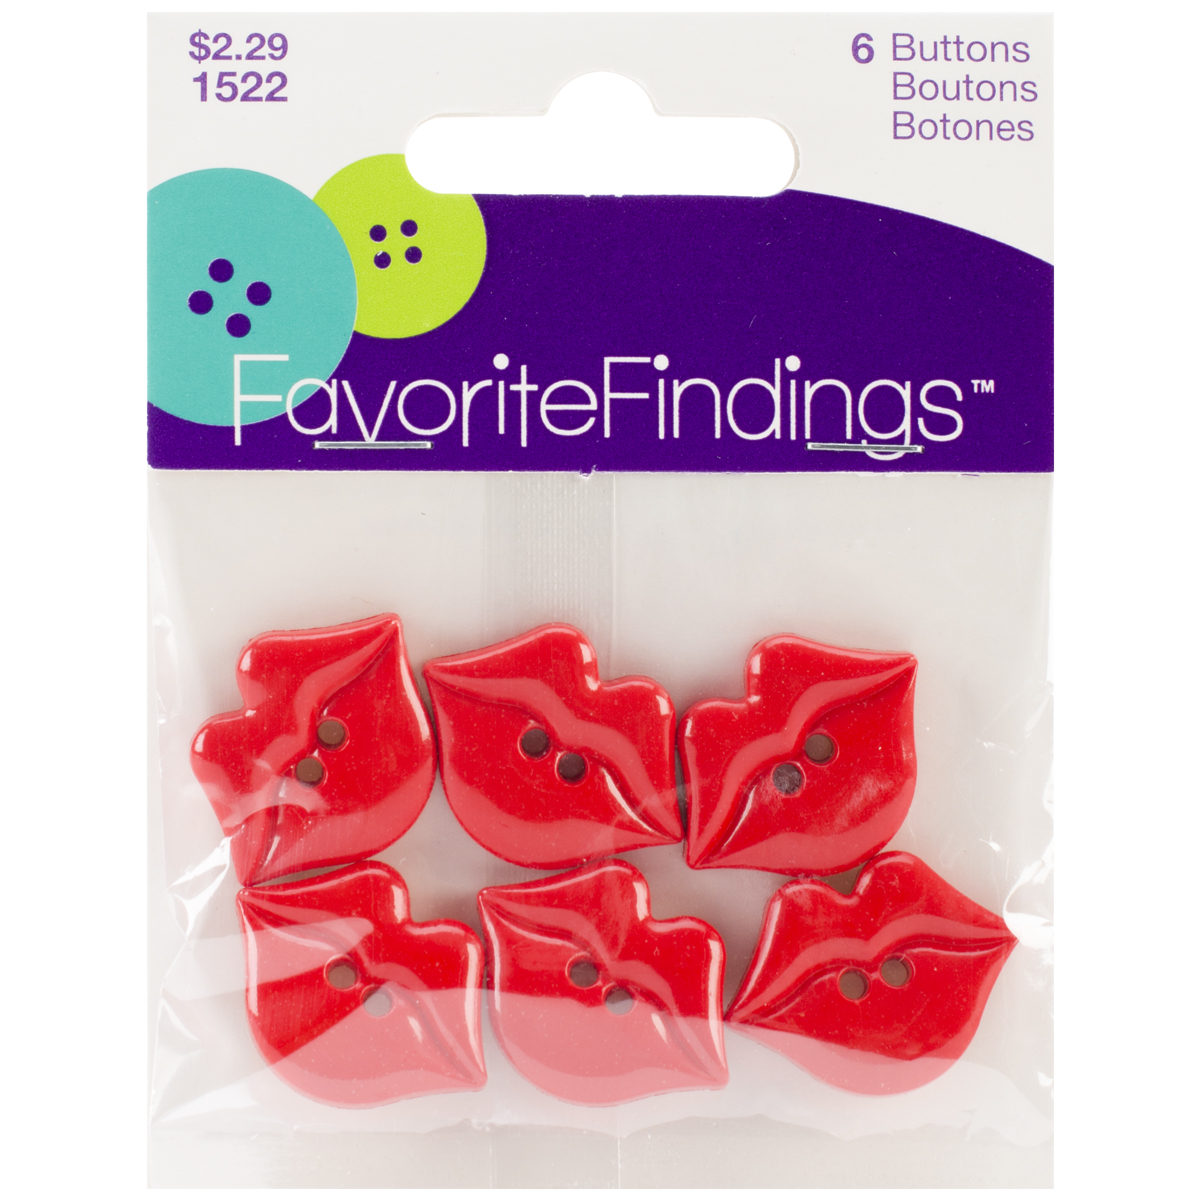 Blumenthal Lansing Favorite Findings Buttons, Kiss Me, Red, 6-Pack Multi-Colored